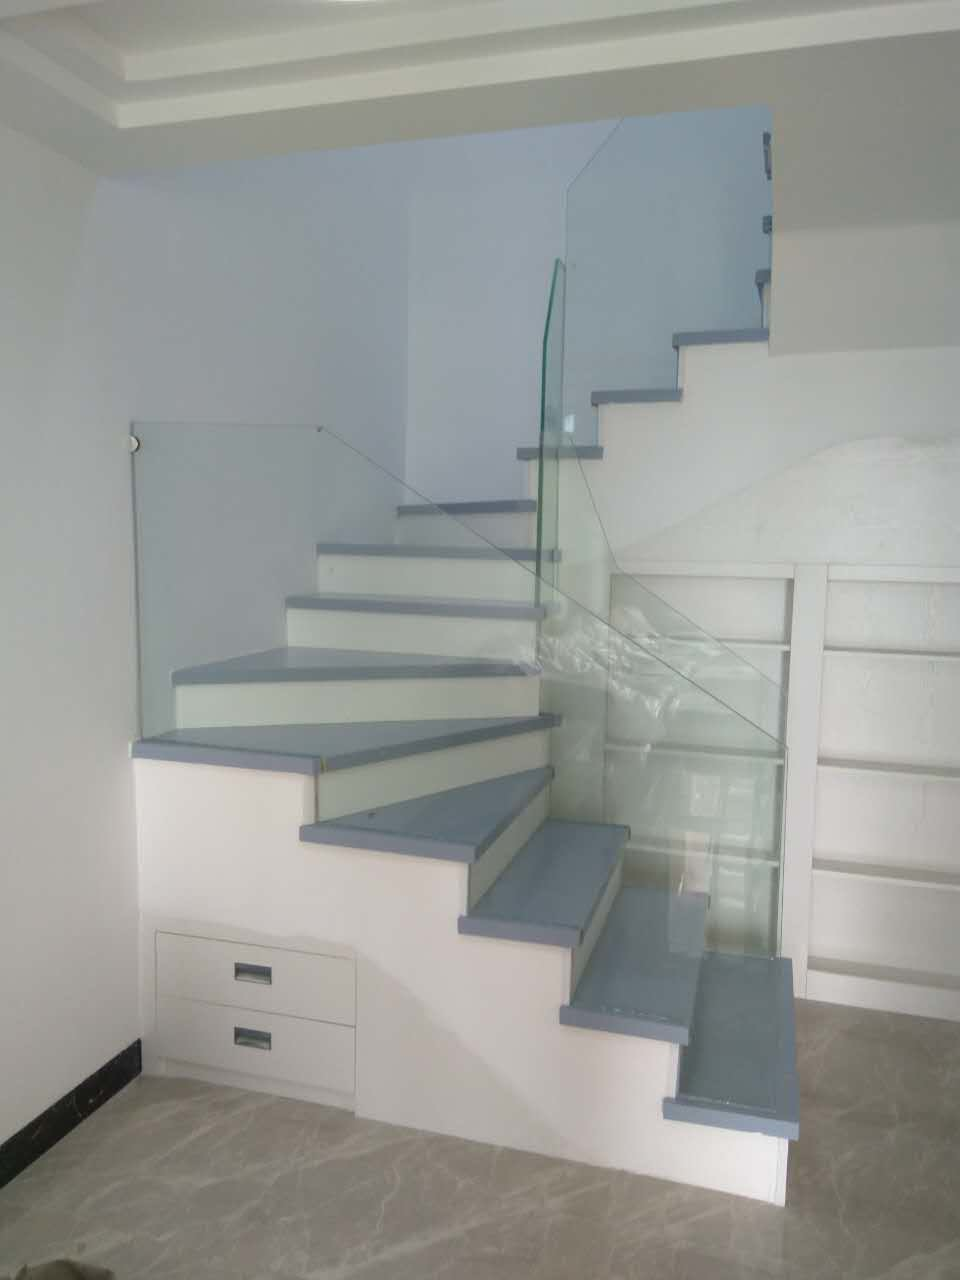 China Interior Glass Railing Wood Stair Kit Cantilever Stairs Stairway Staircase